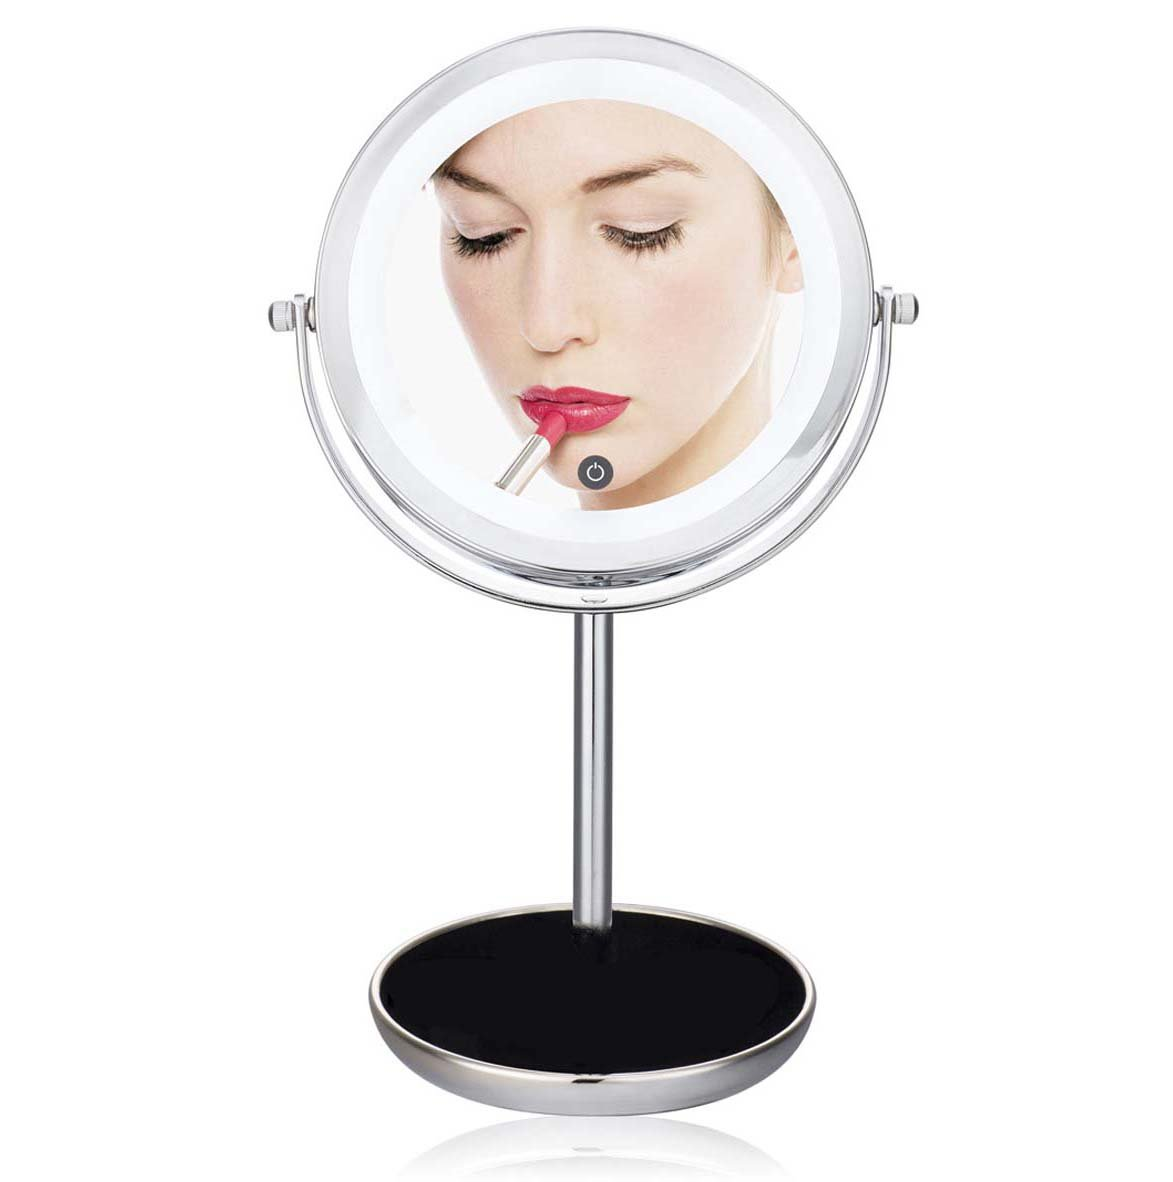 J&A Touch-Sensitive Led Desktop Double-Sided Cosmetic Shaving Mirror, Adjustable Brightness 5 Times Magnification Smart Touch Mirror, 360-Degree Rotating Portable Portable Makeup Mirror Storage